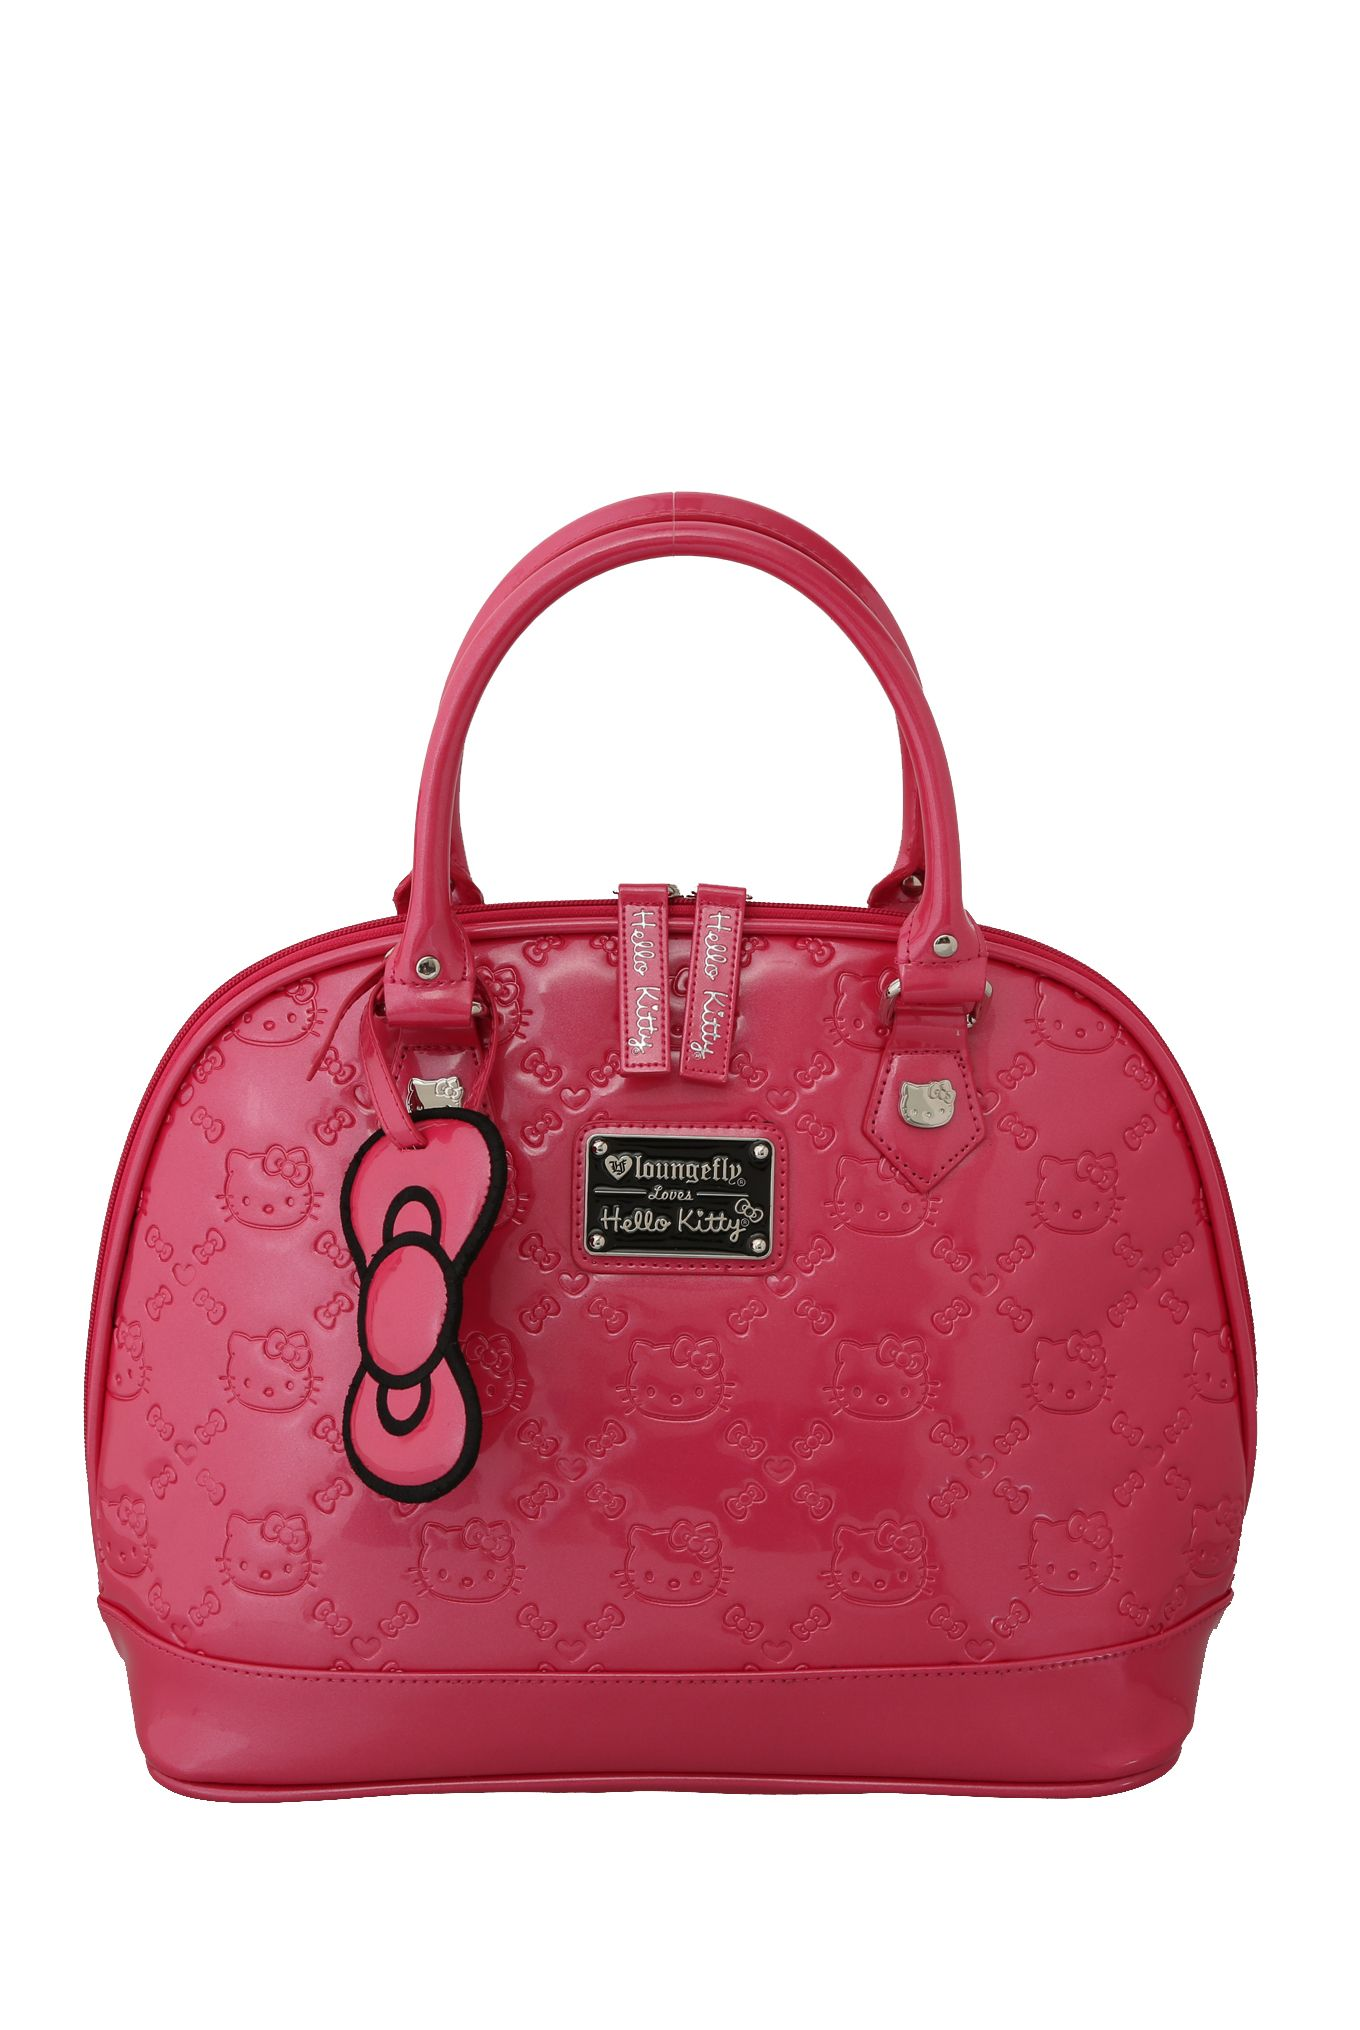 d93b6bfae8c4 Loungefly Hello Kitty Pink Dome Bag